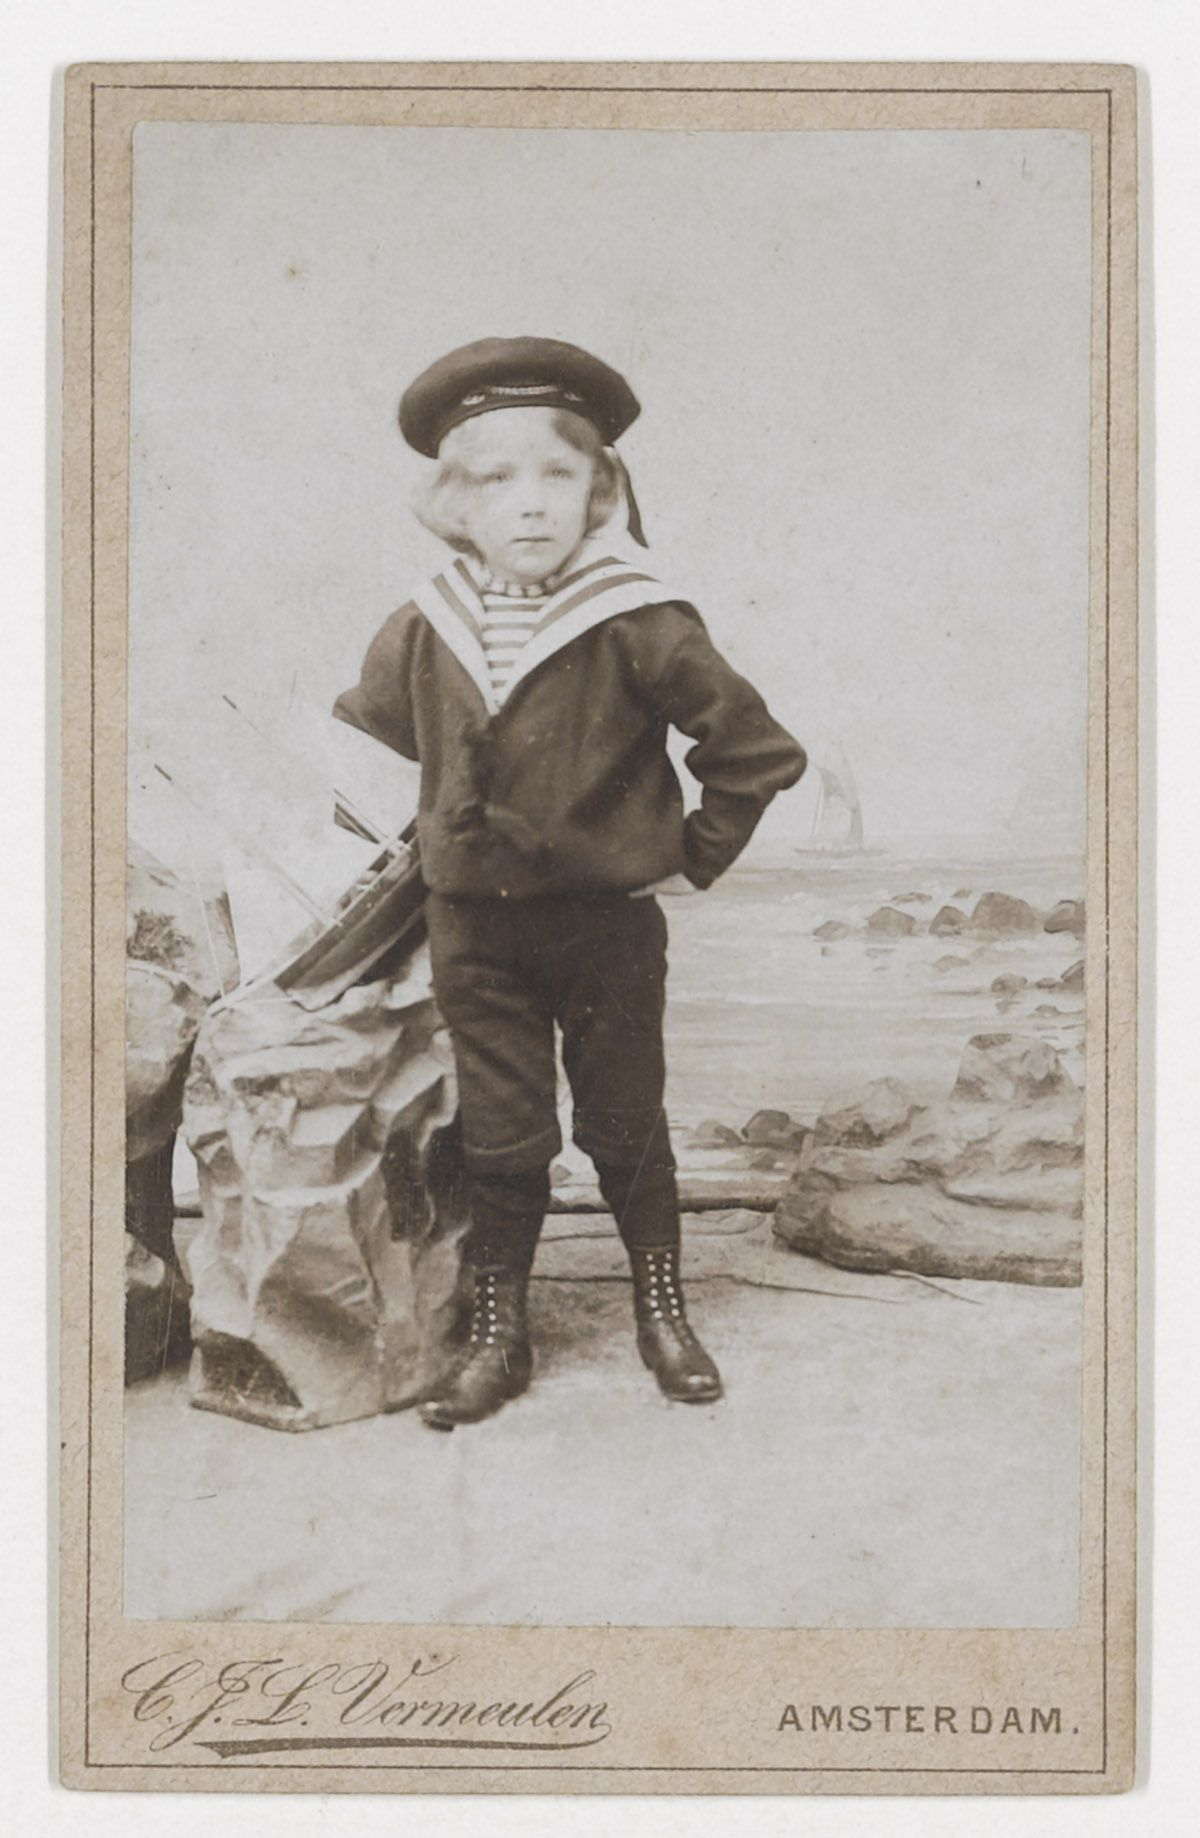 Vincent Willem van Gogh is sailor suit, ca. 1896. Photo studio Vermeulen Amsterdam Vincent Willem was the Son of Theo van Gogh.